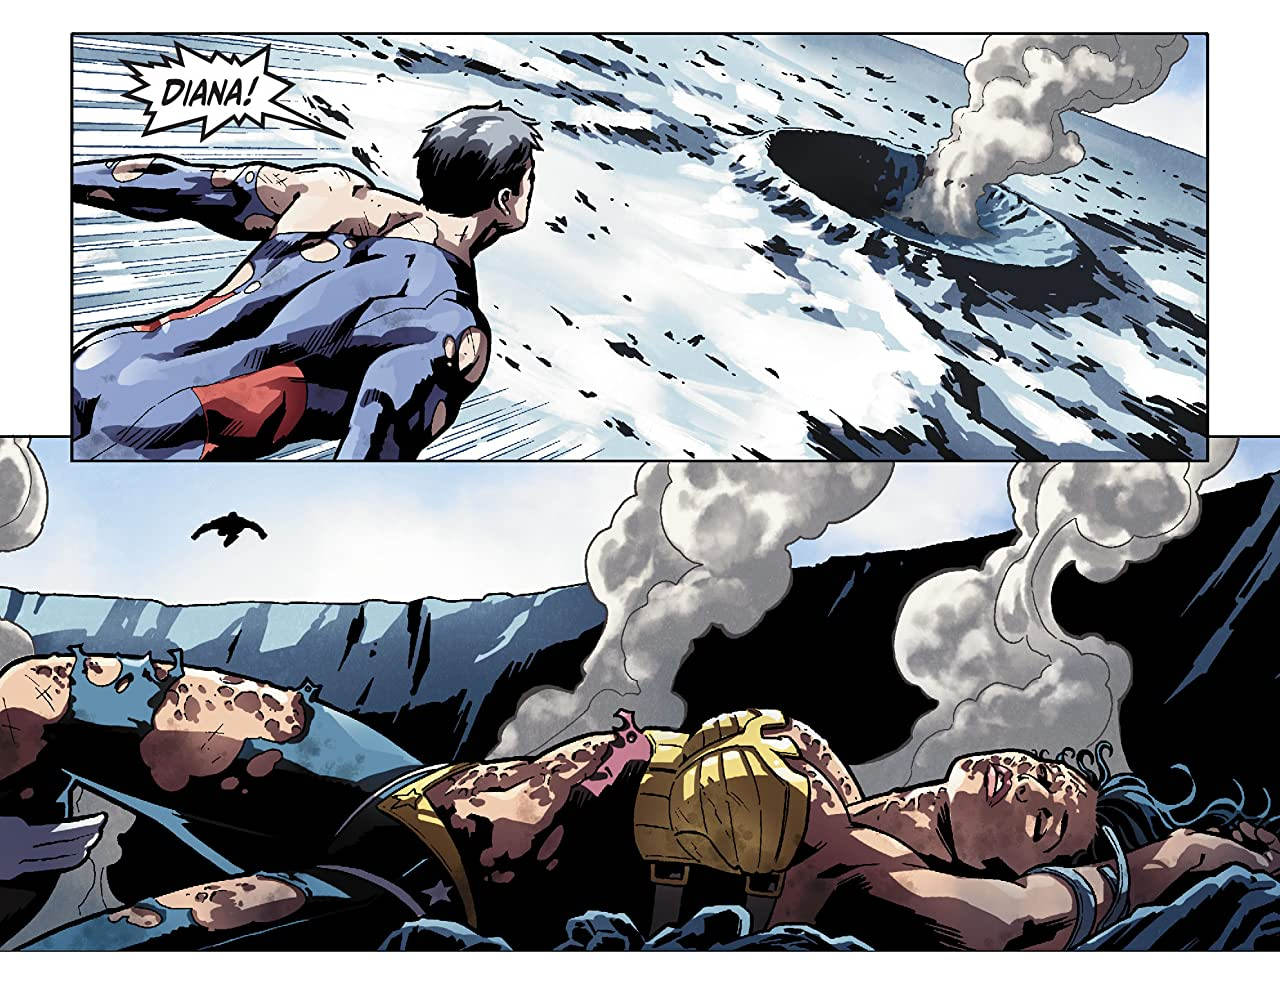 Injustice: Gods Among Us (2013) #33